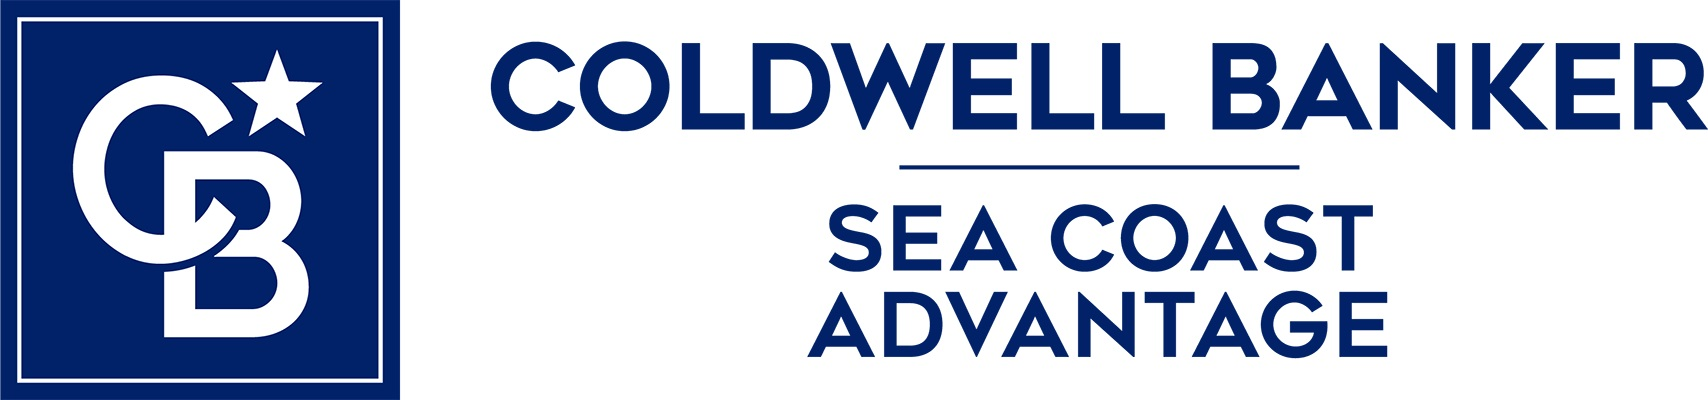 Dave Martin - Coldwell Banker Sea Coast Advantage Realty